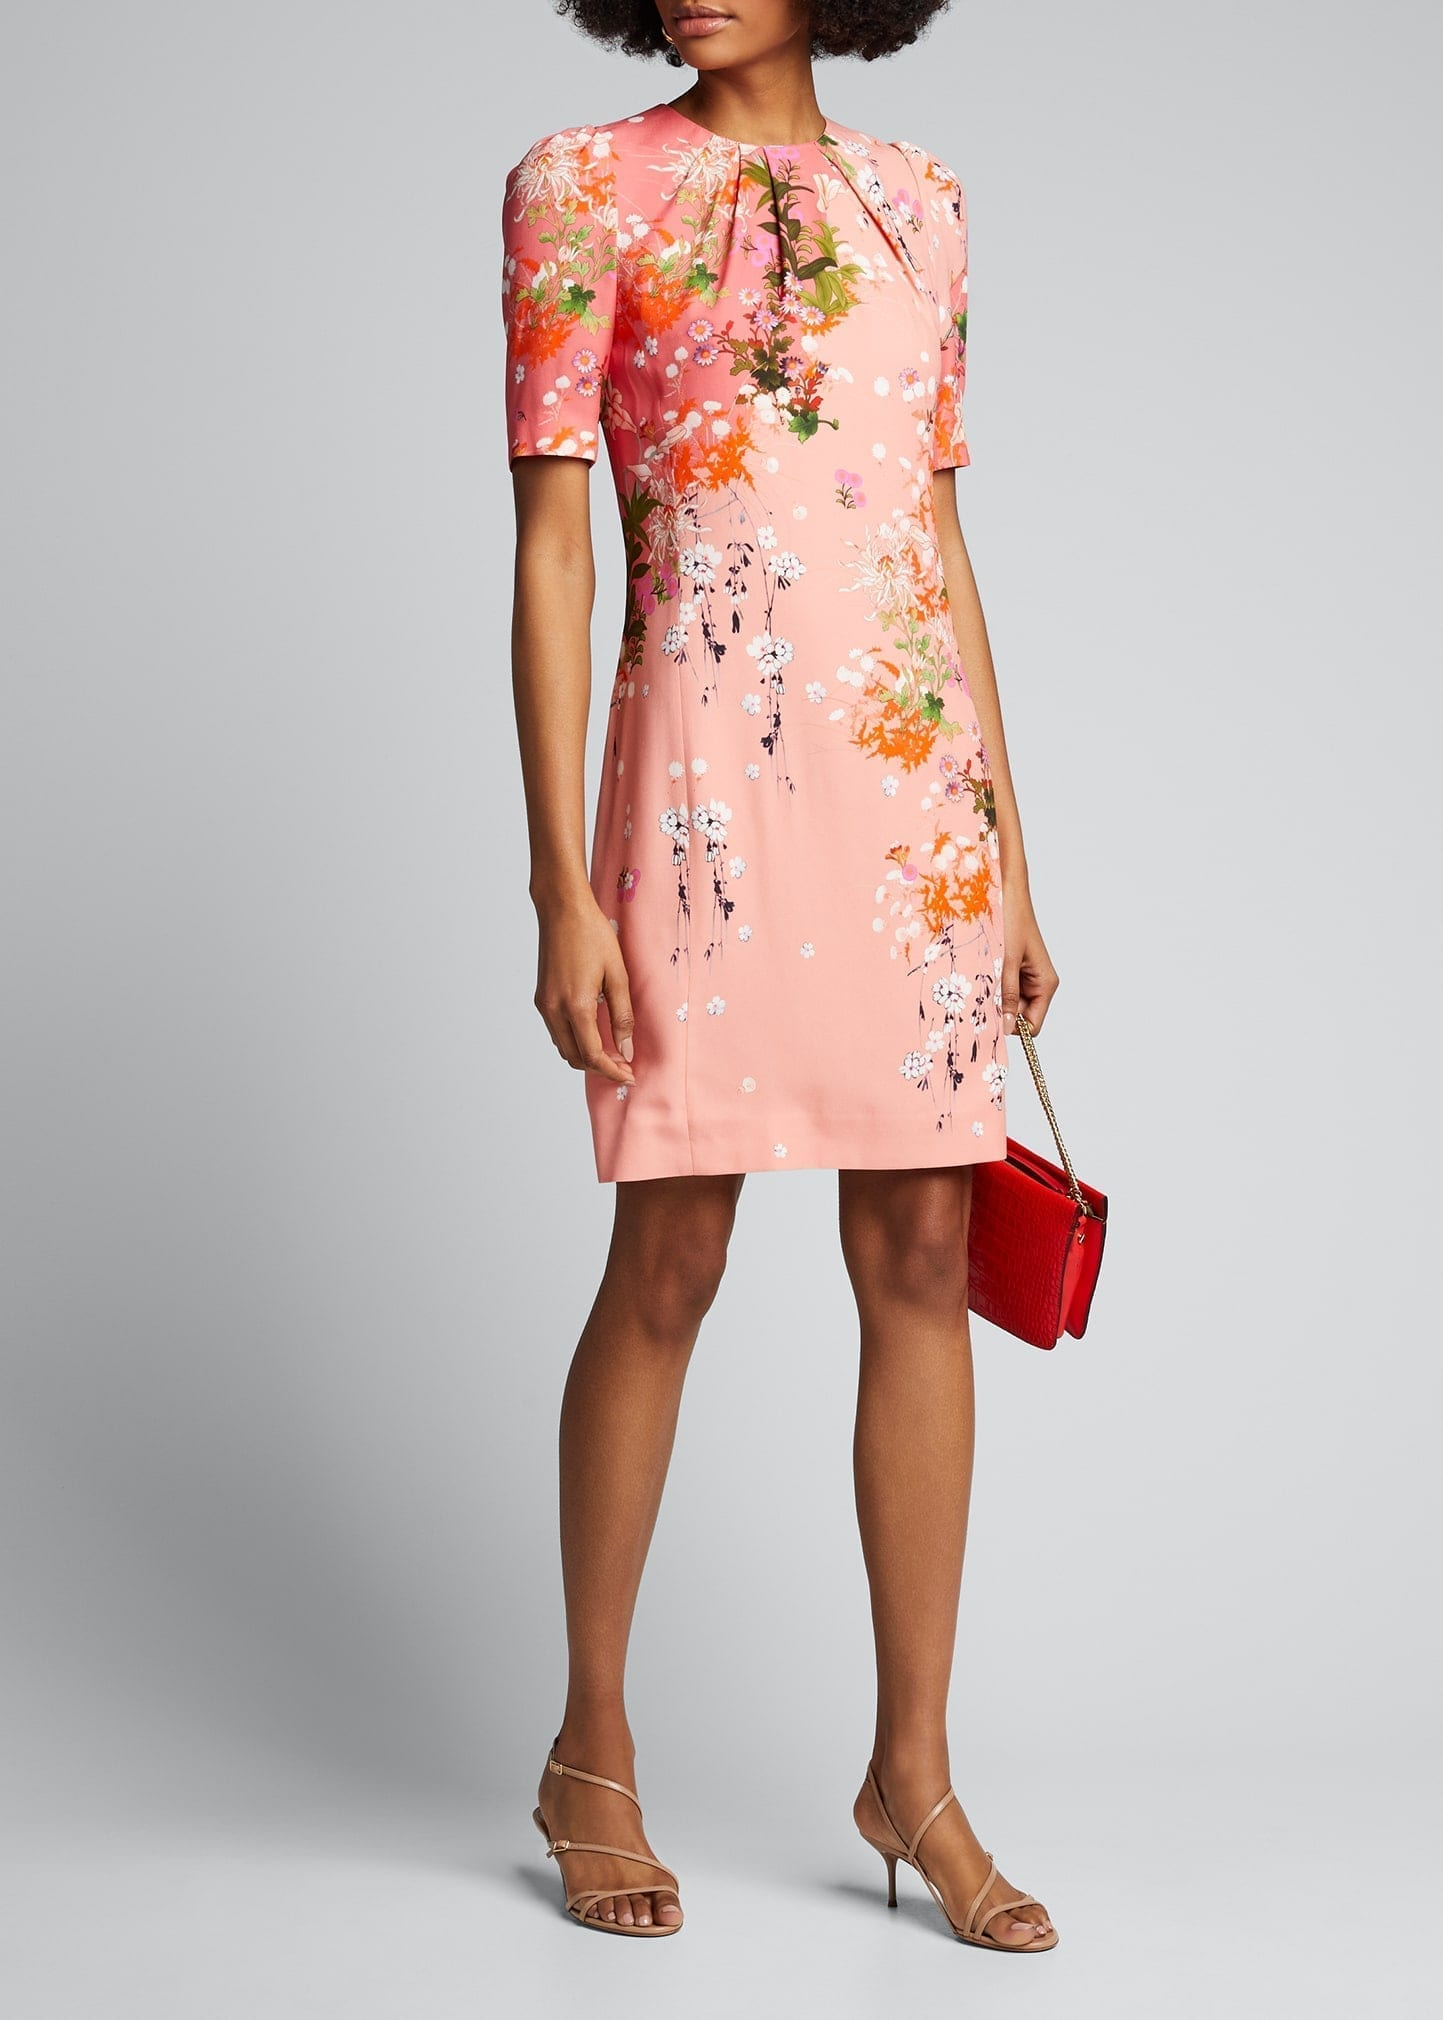 GIVENCHY Spring Aroma Printed Crepe Satin Sheath Dress